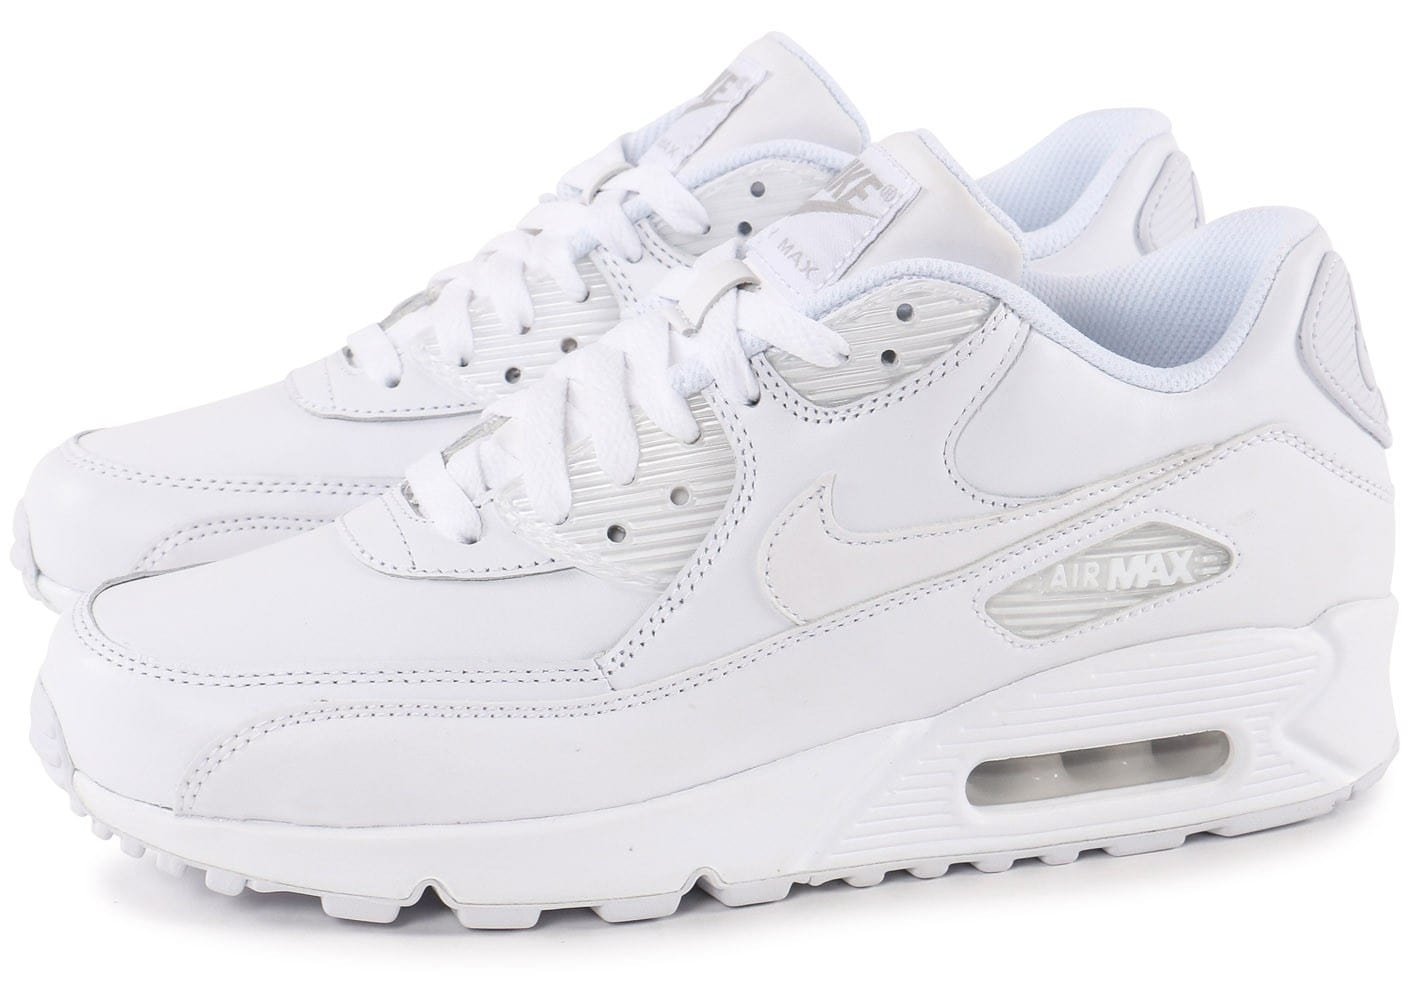 Nike Air Max 90 Leather Blanche - Chaussures Baskets homme ...